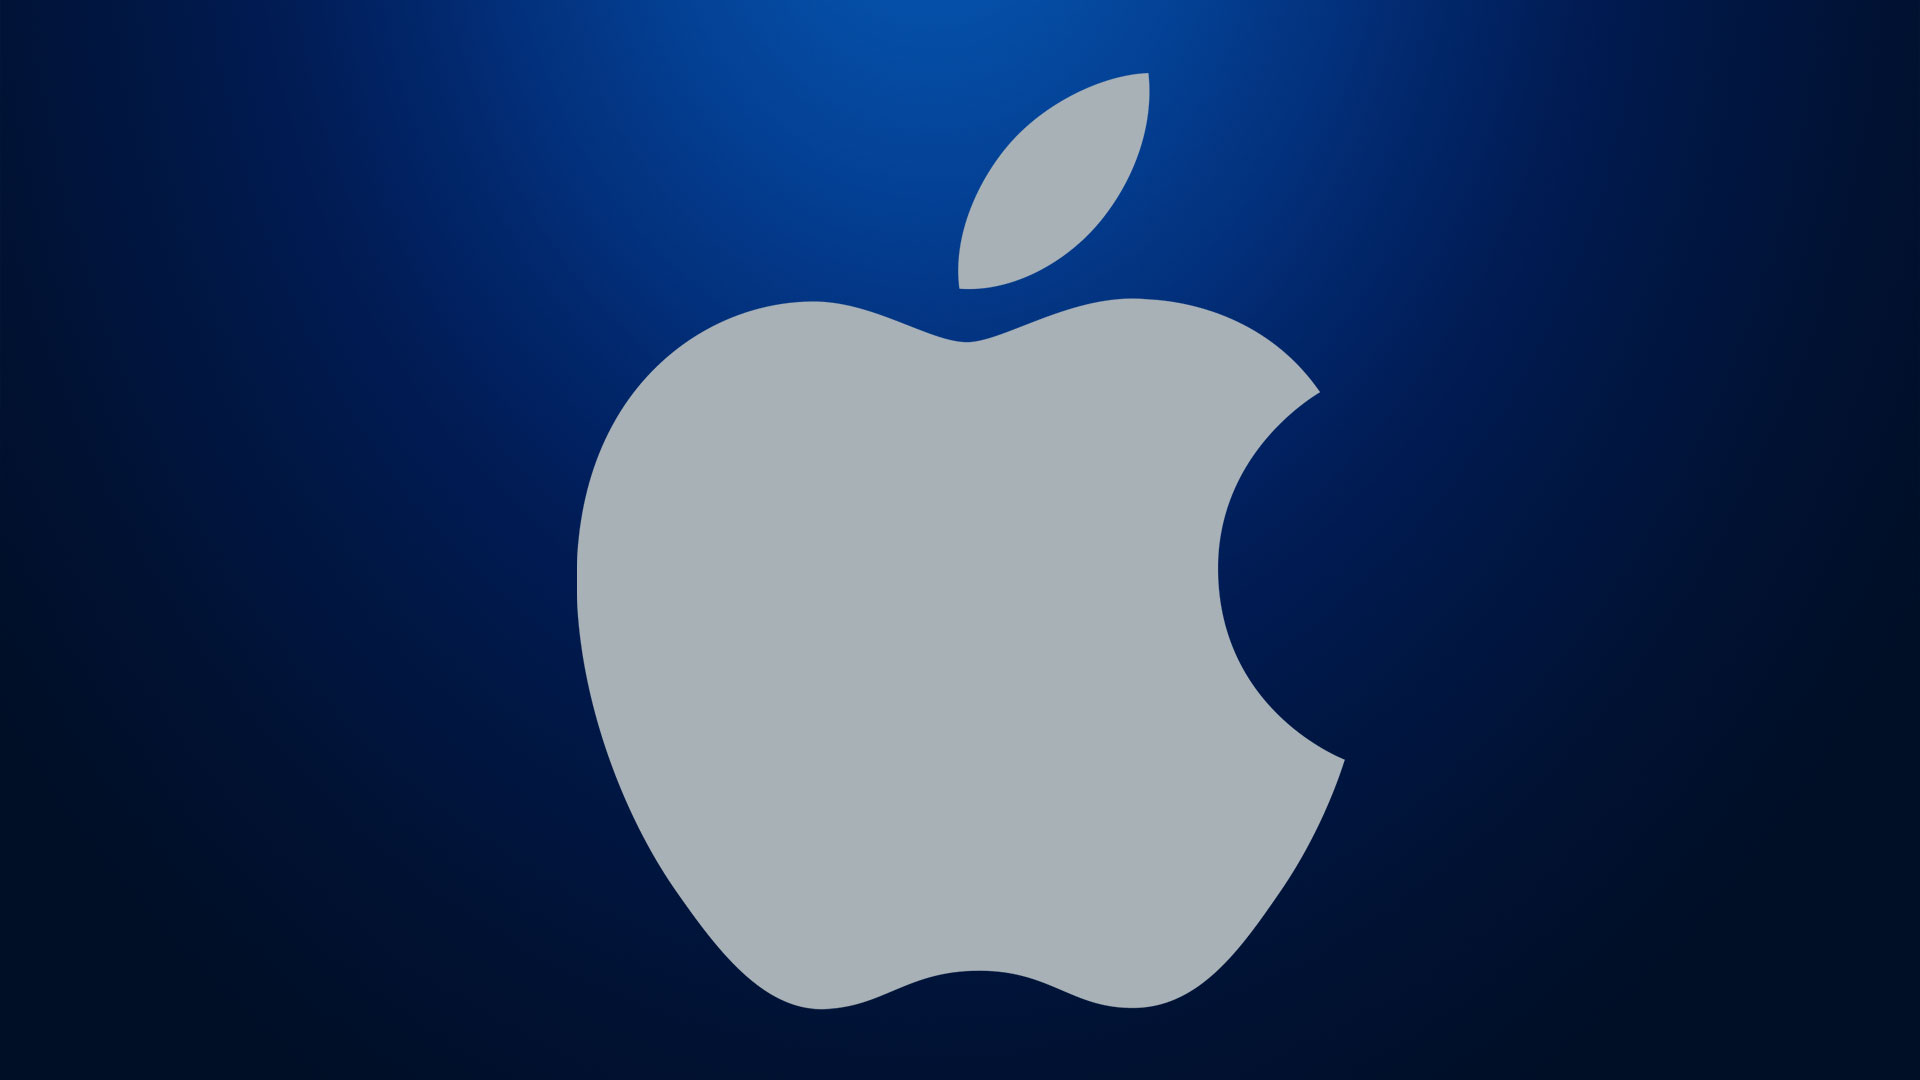 KELO Apple logo